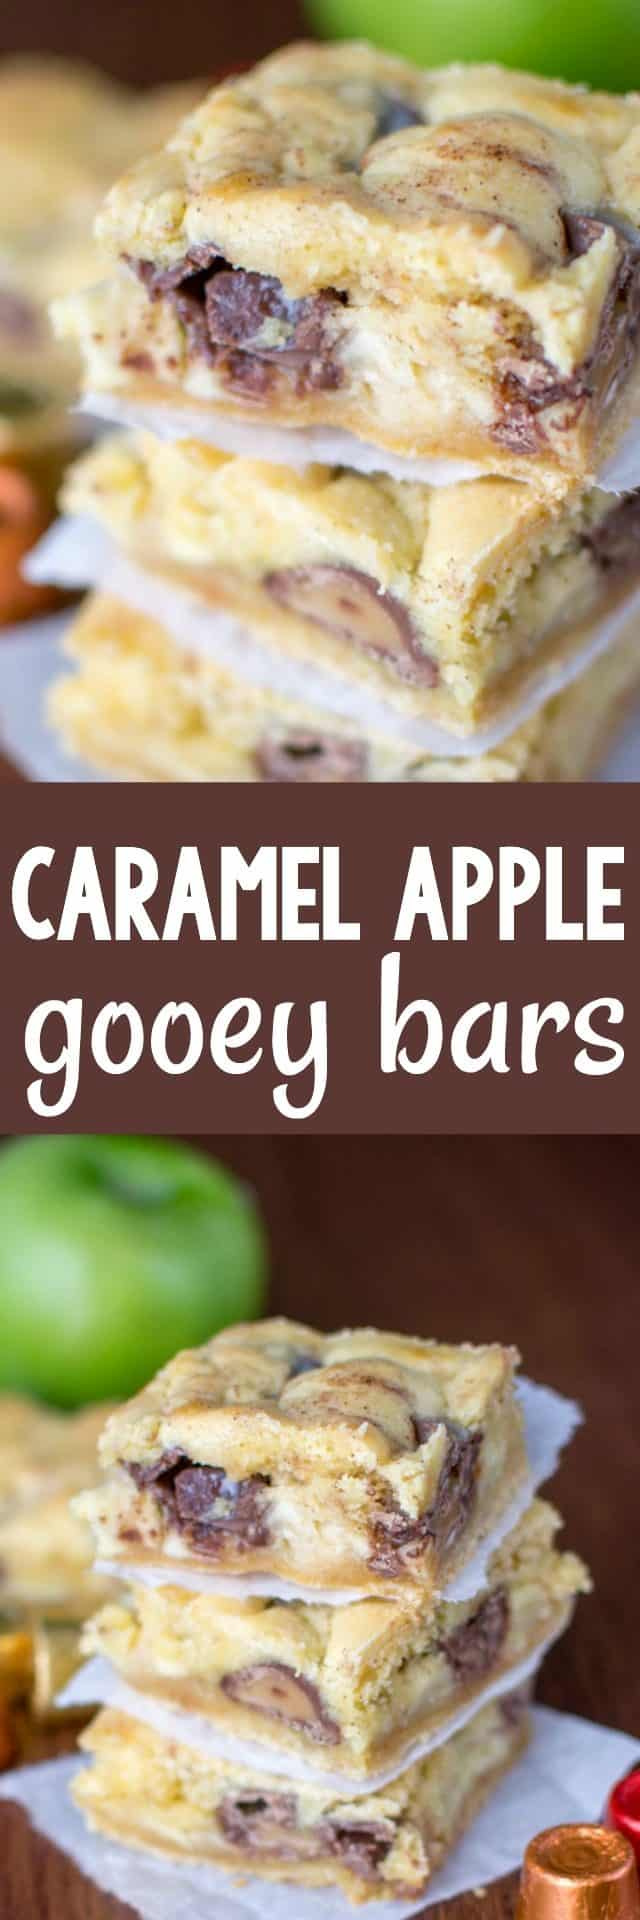 These Caramel Apple Gooey bars are one of my favorite versions yet: cake mix gooey bars are full of Rolos candy and apples for the perfect fall recipe.